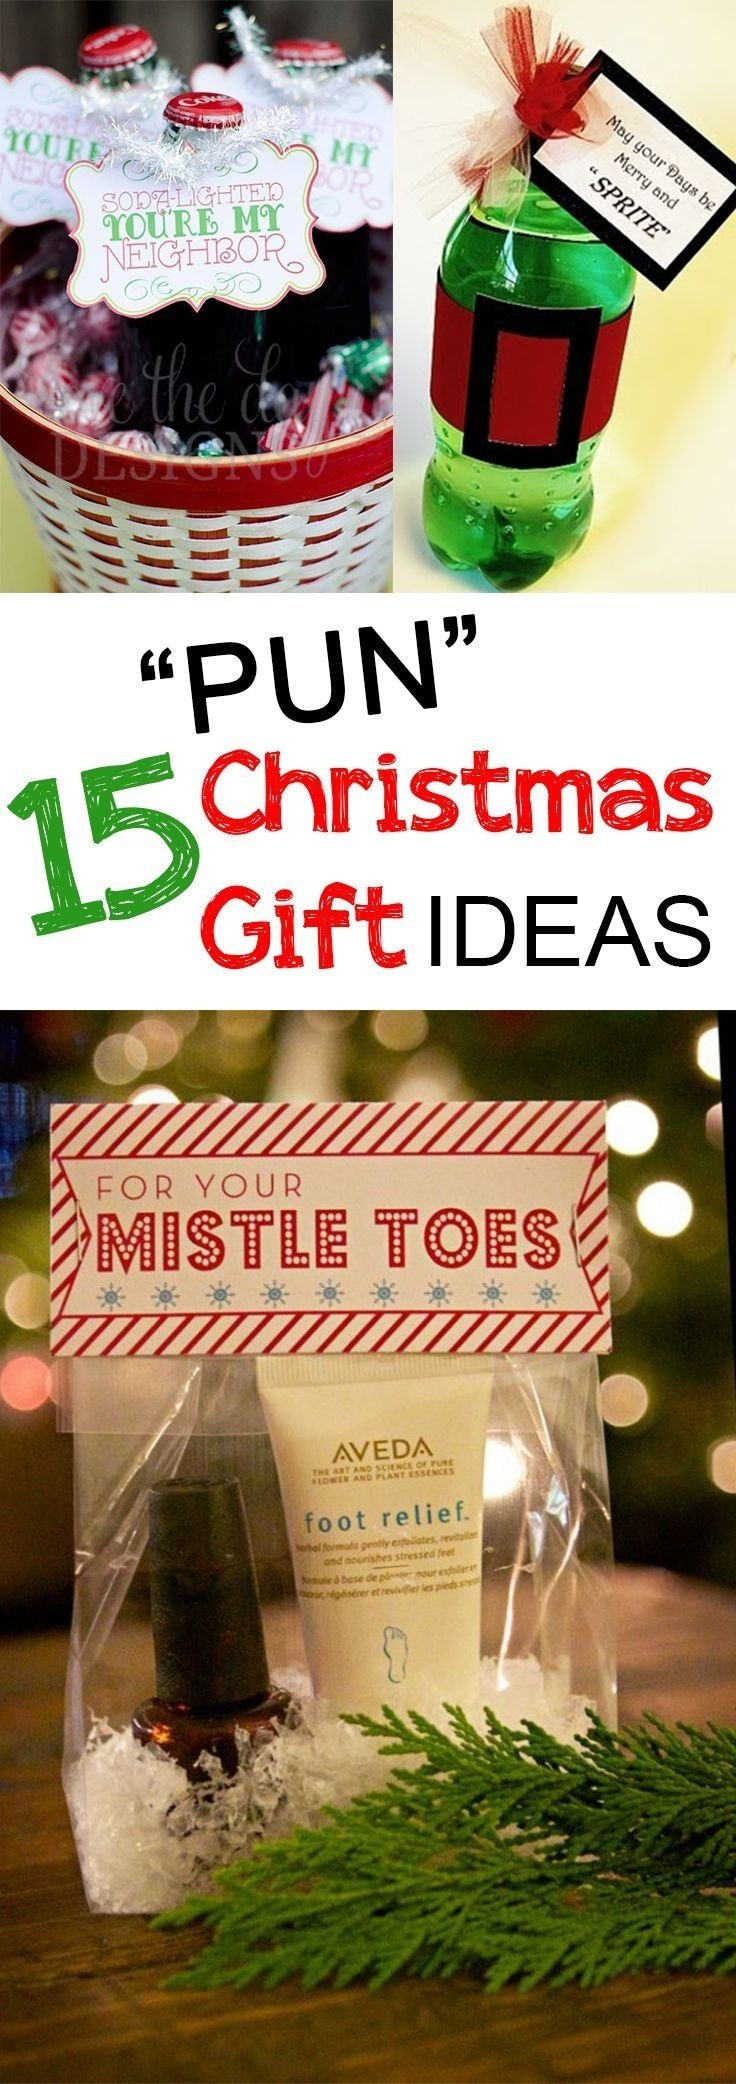 10 Best Christmas Gift Ideas For Clients 90 best play on words gift ideas images on pinterest gift ideas 2021